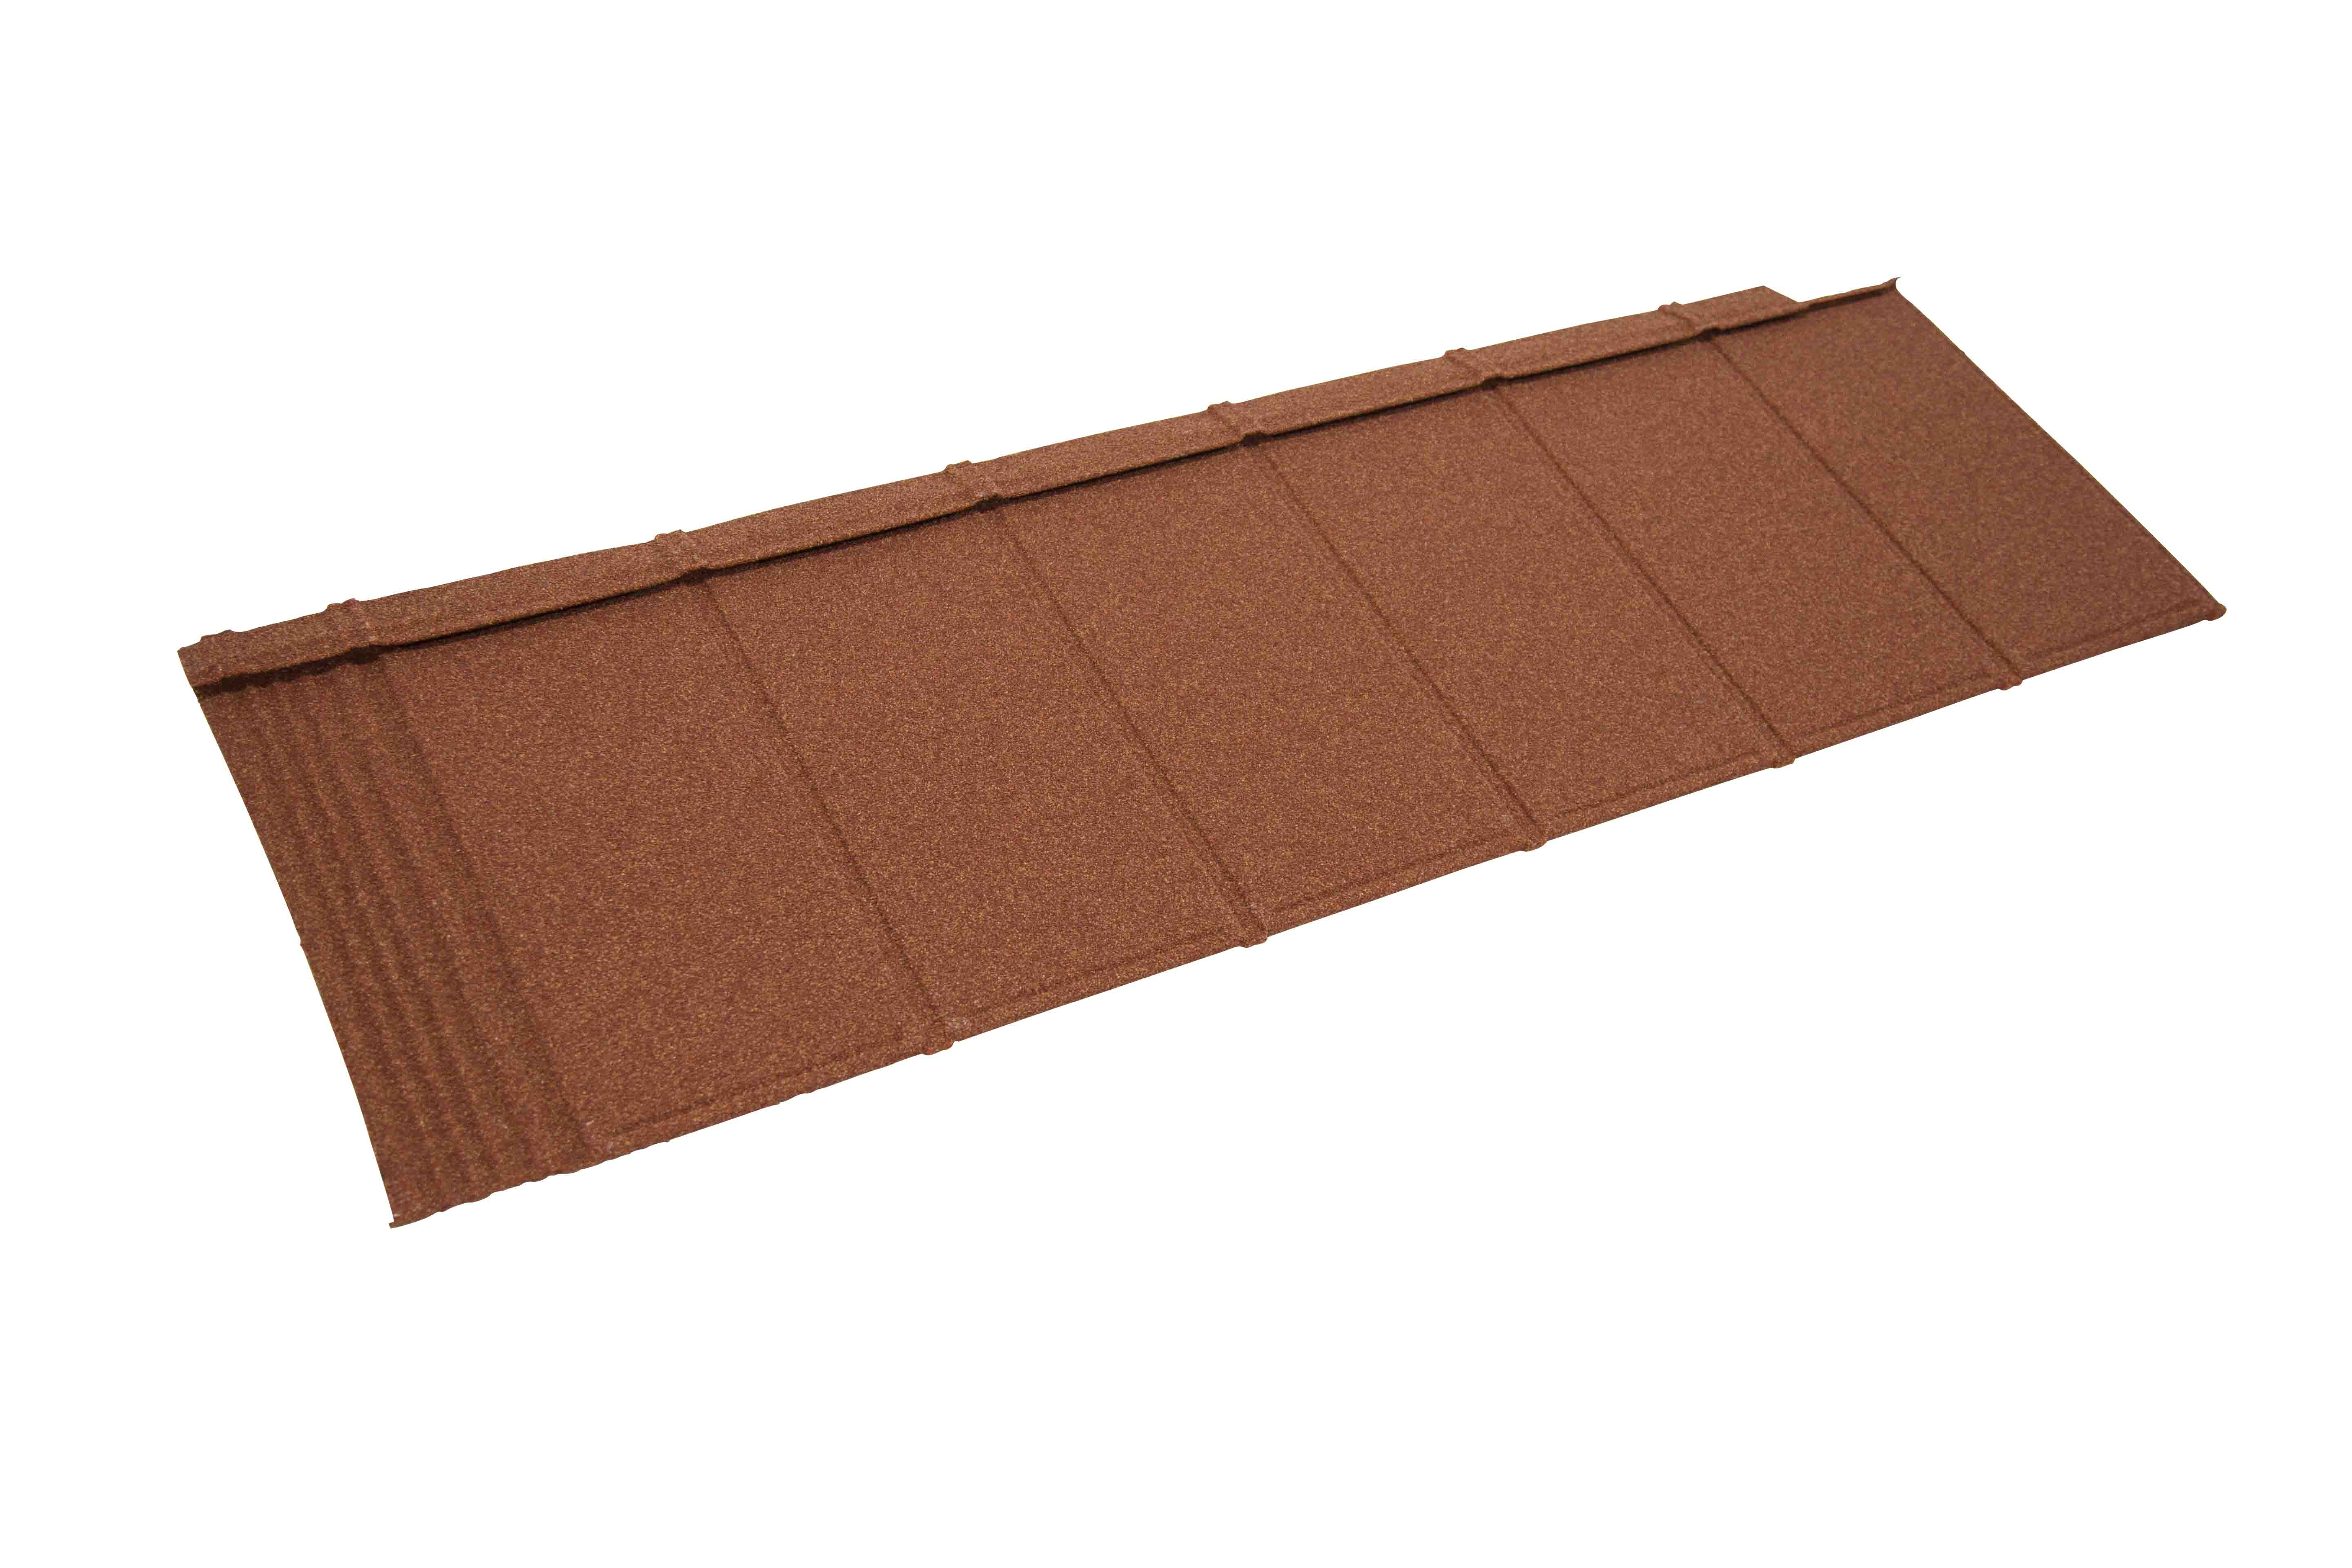 Metrotile iPanel Roofing and Cladding Tile in Terracotta